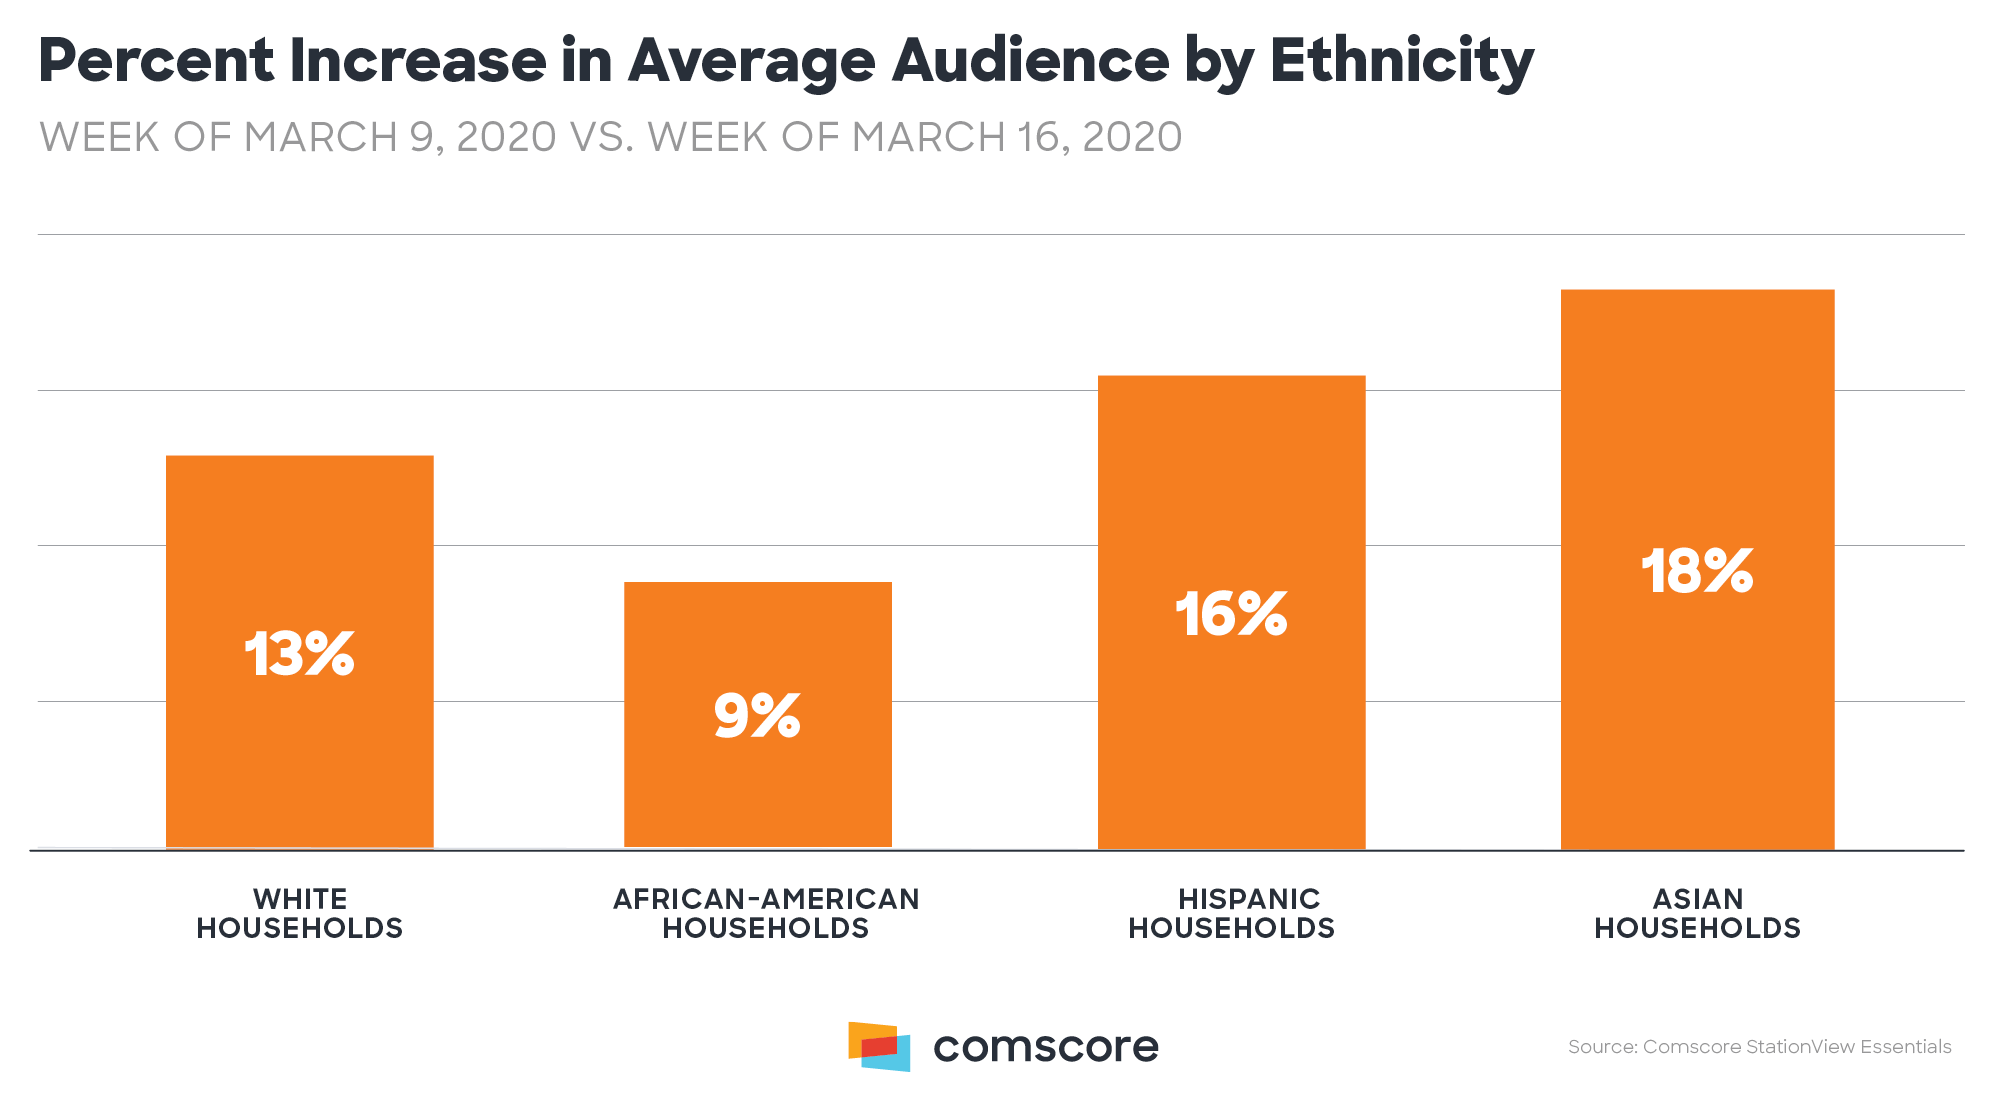 Coronavirus - TV viewing audience increase by Ethnicity